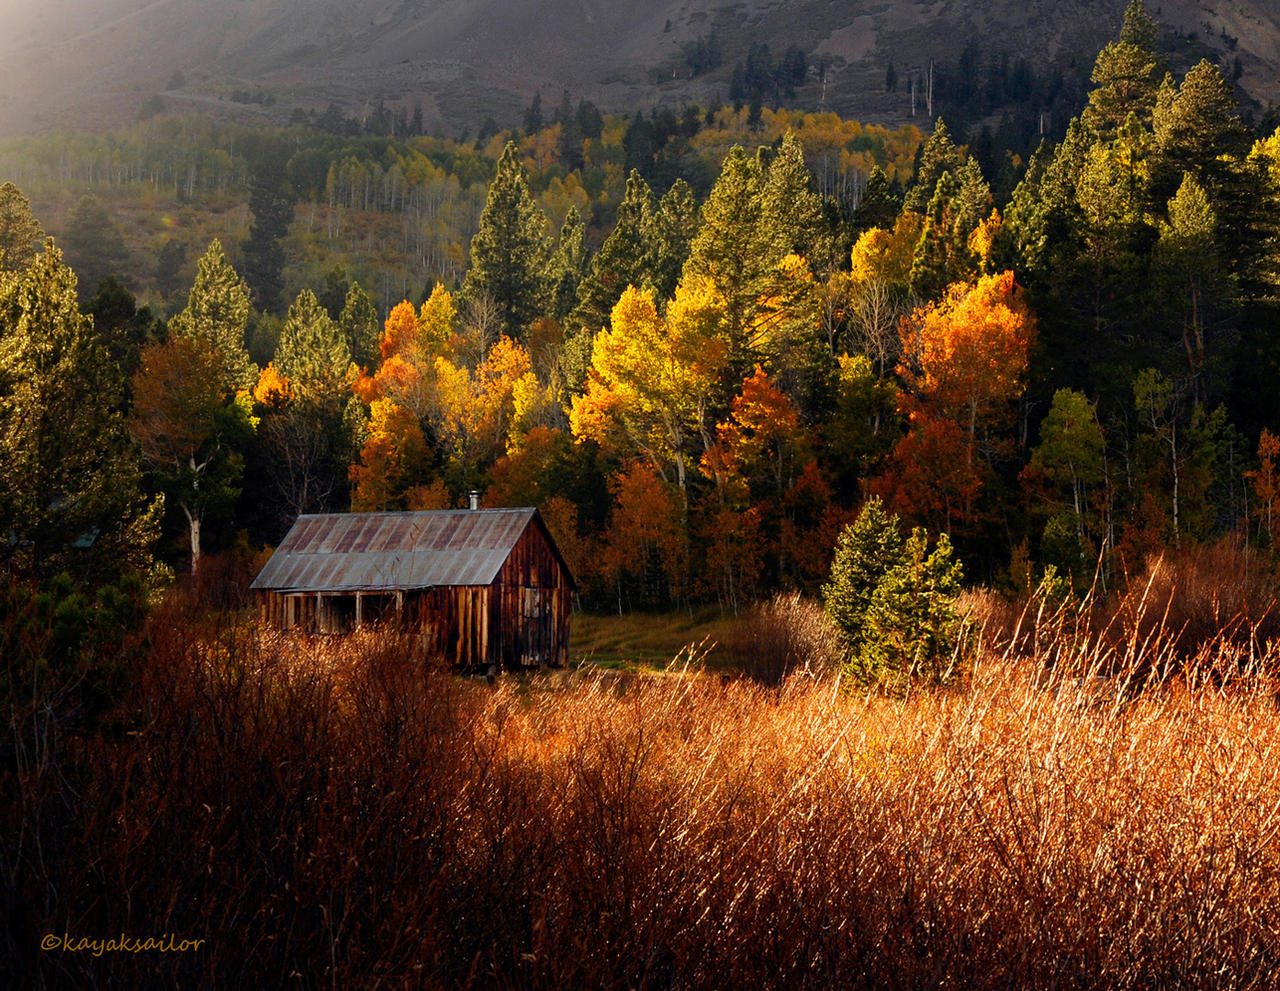 Cabin in the woods by kayaksailor